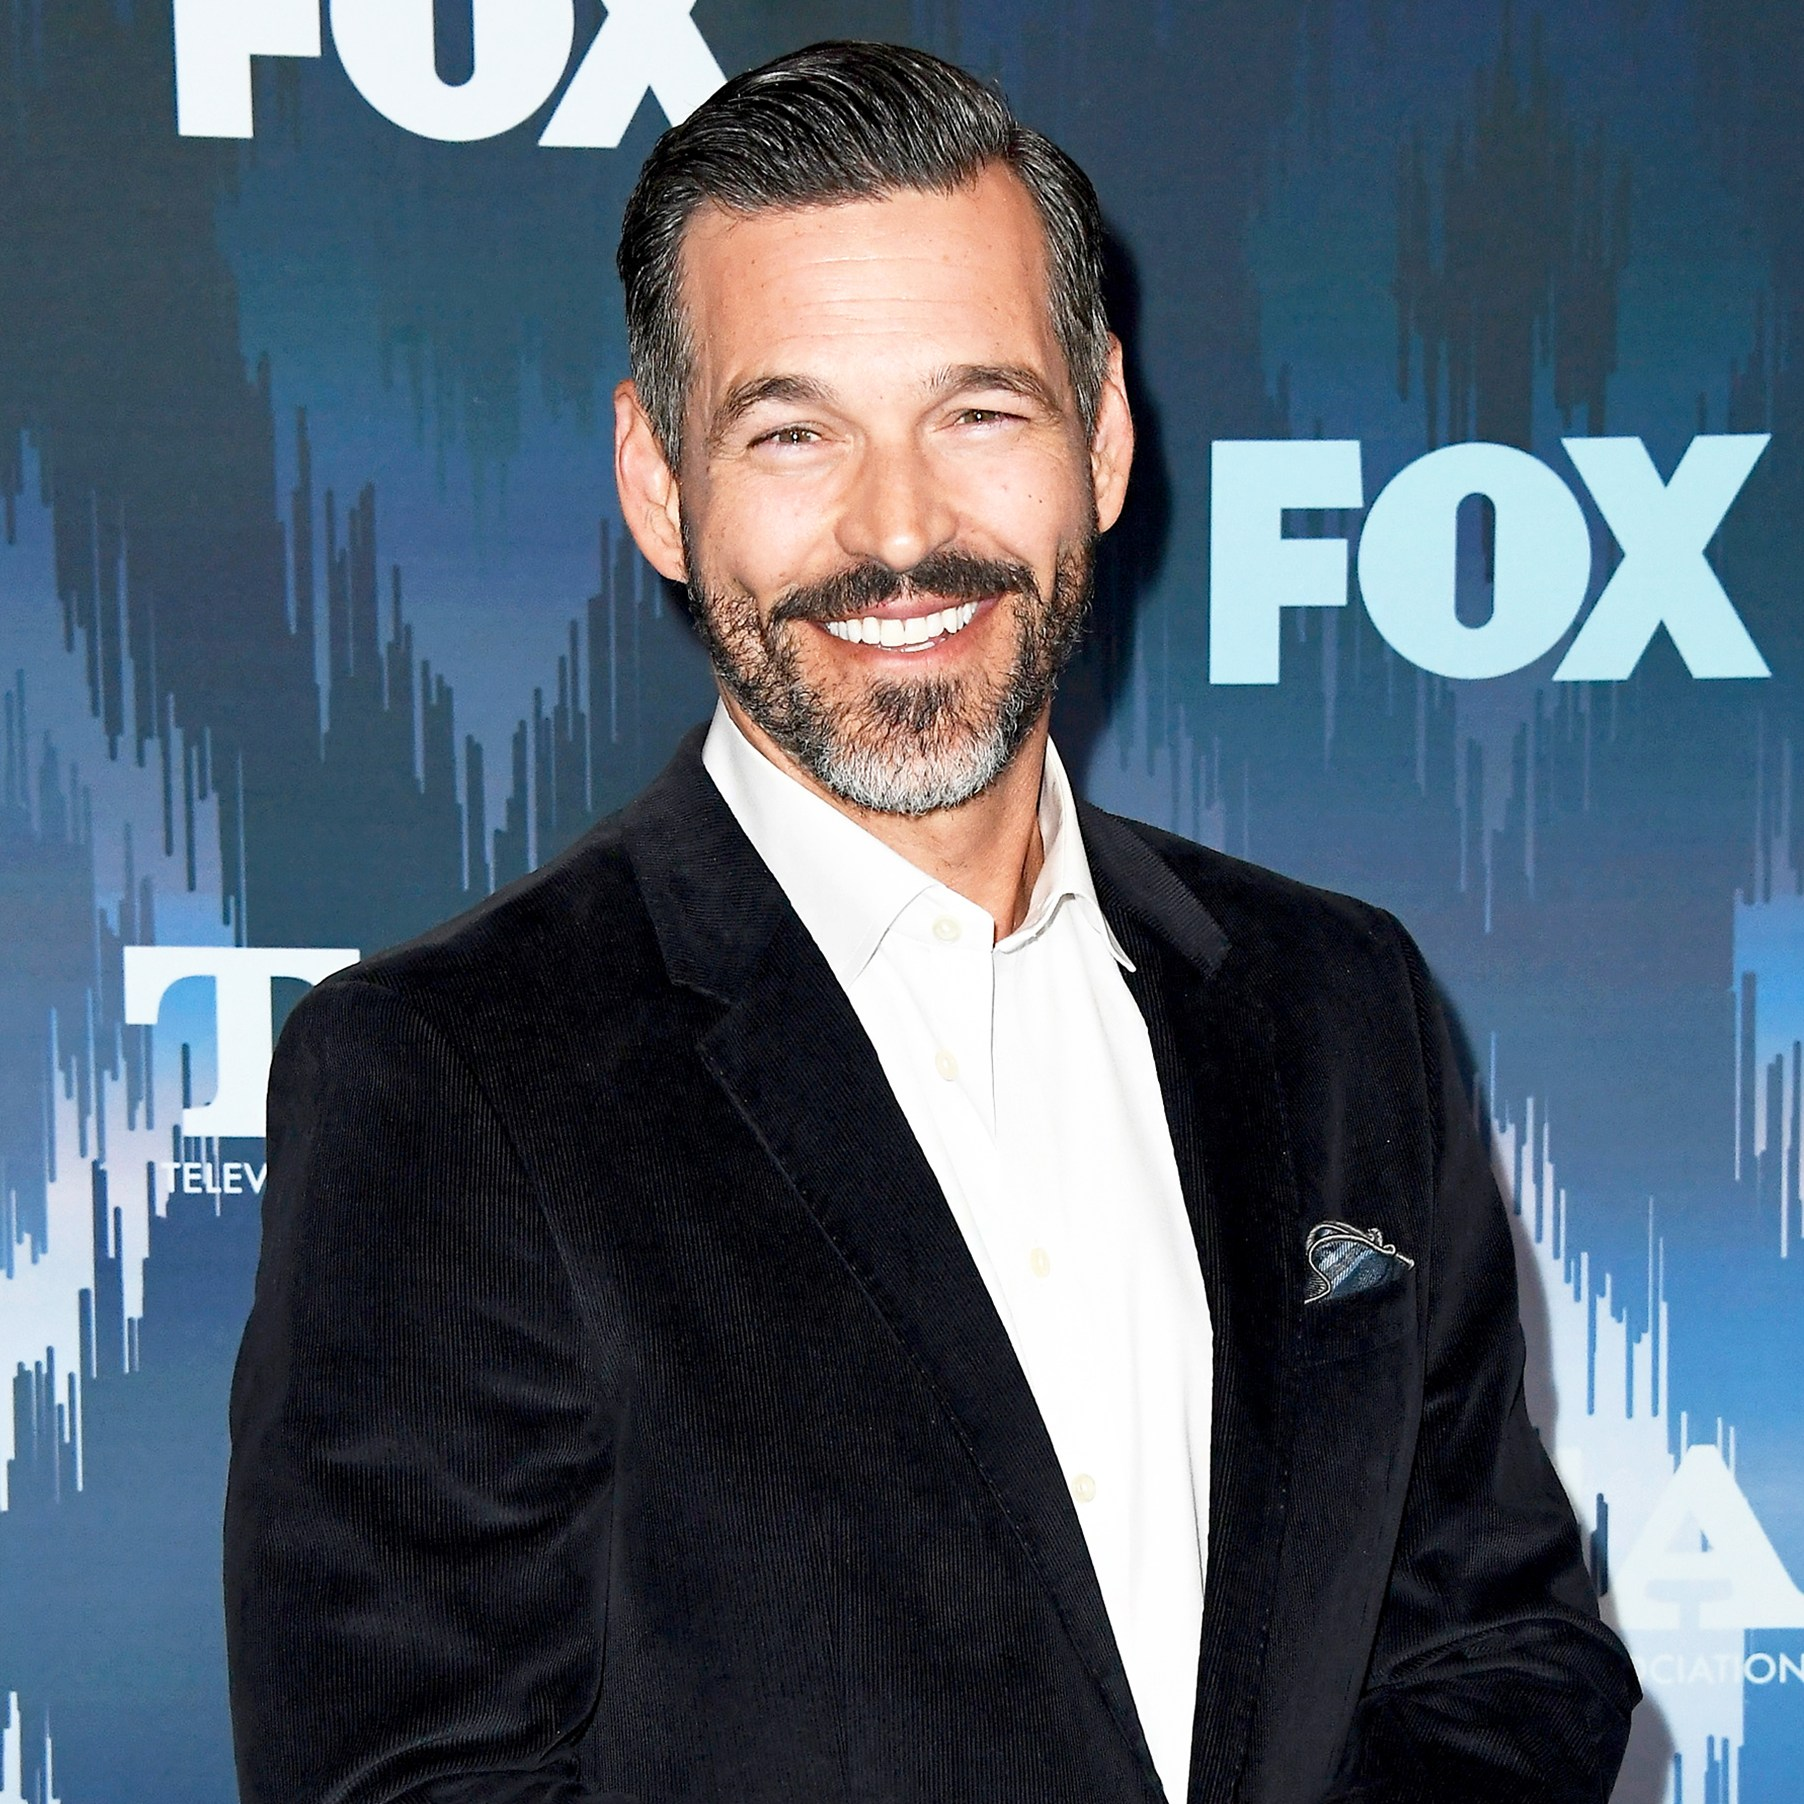 Eddie Cibrian attends the FOX All-Star Party during the 2017 Winter TCA Tour at Langham Hotel in Pasadena, California.